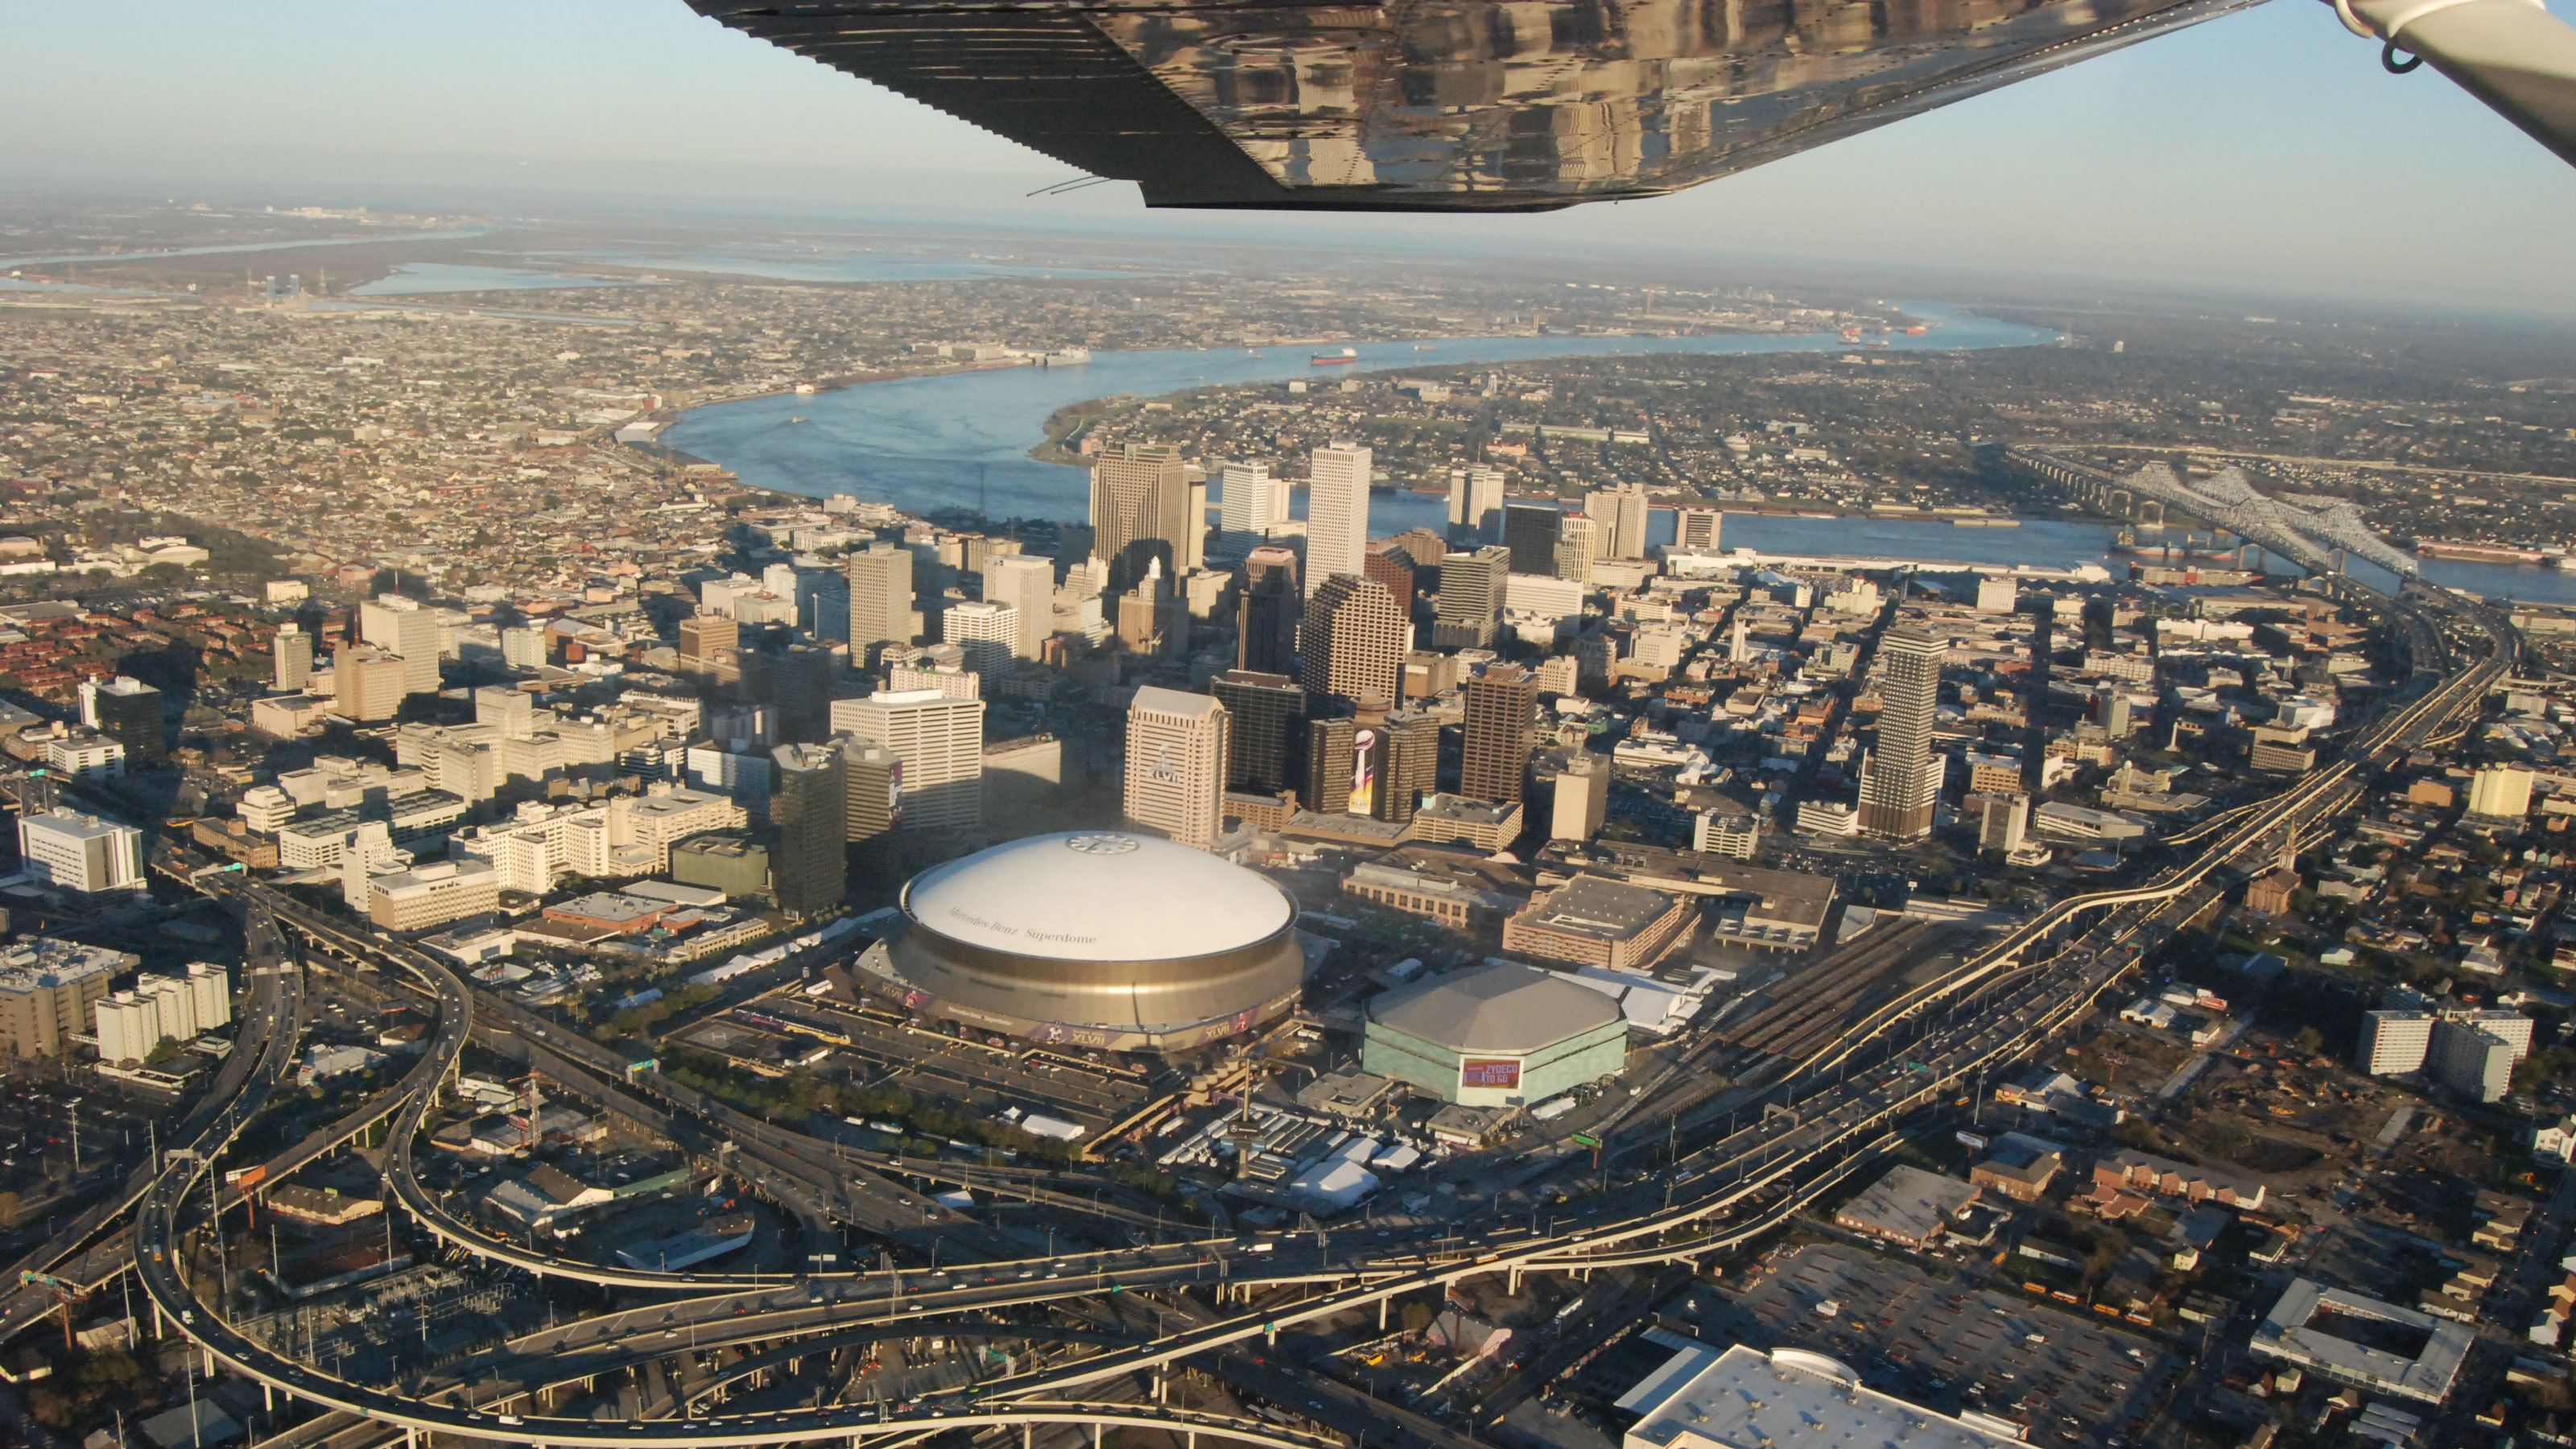 Ariel view of stadium above New Orleans